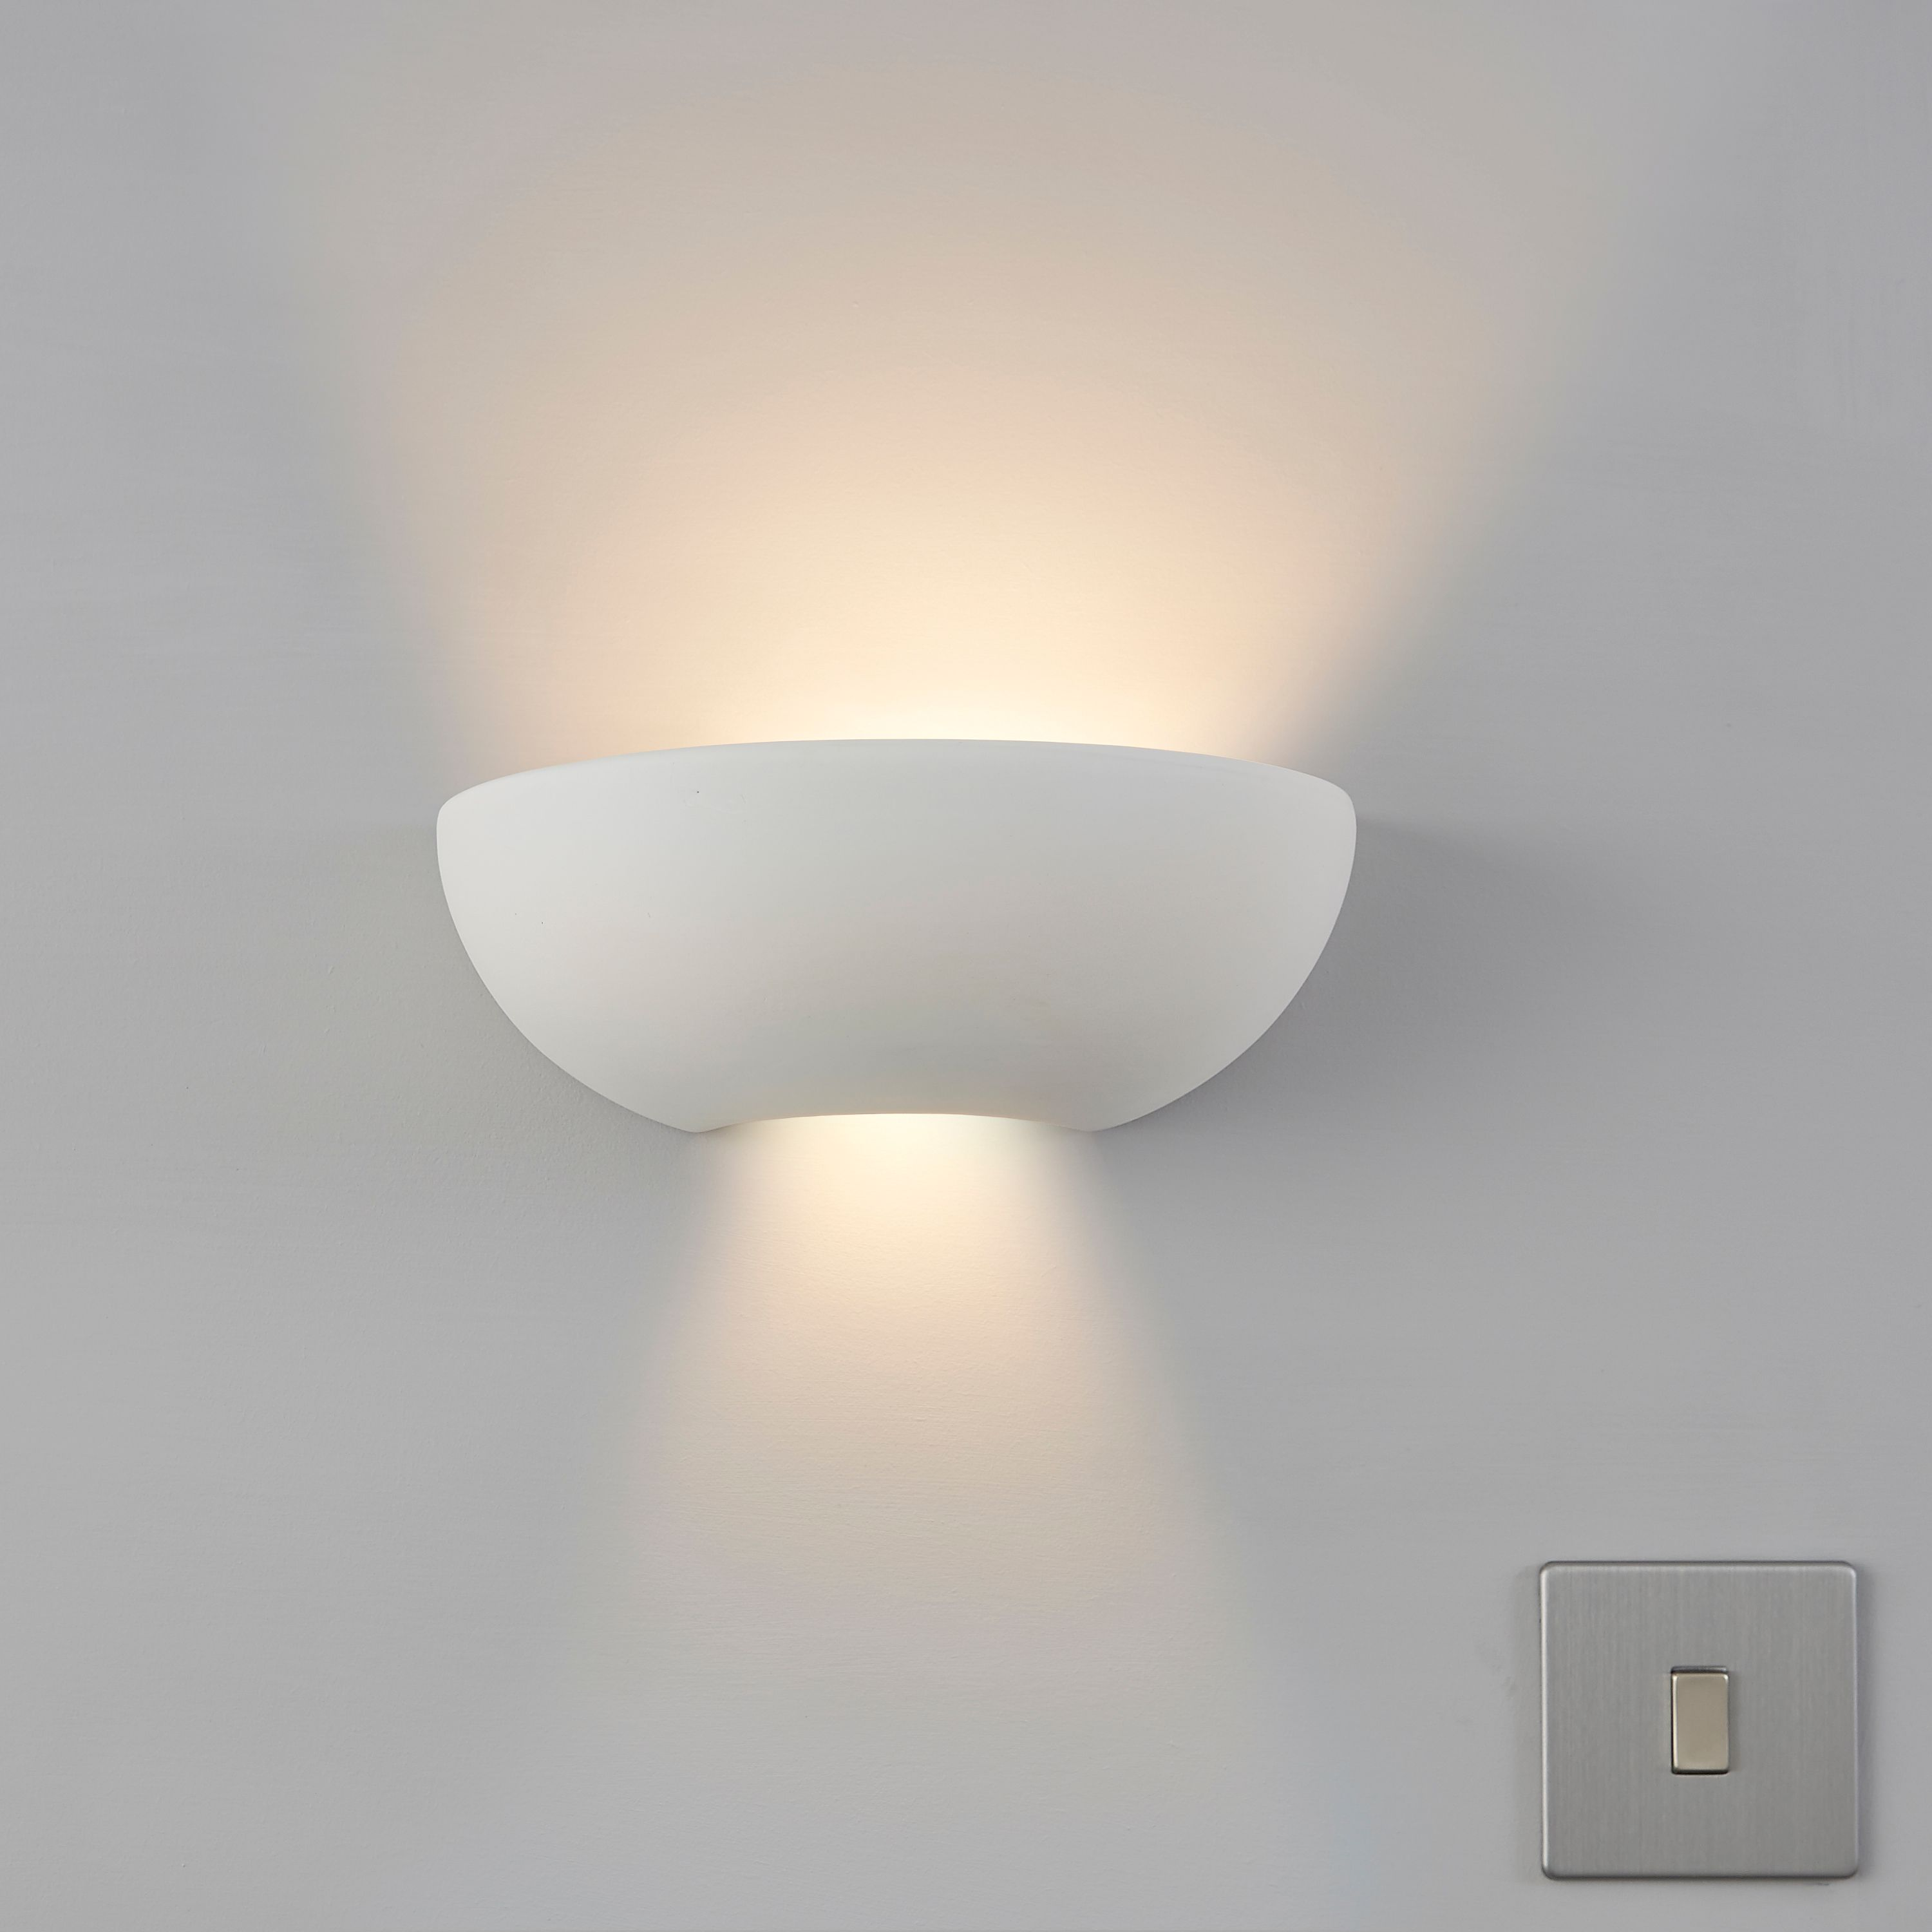 Elеgаnt Wall Lighting without Wiring | The Lamps